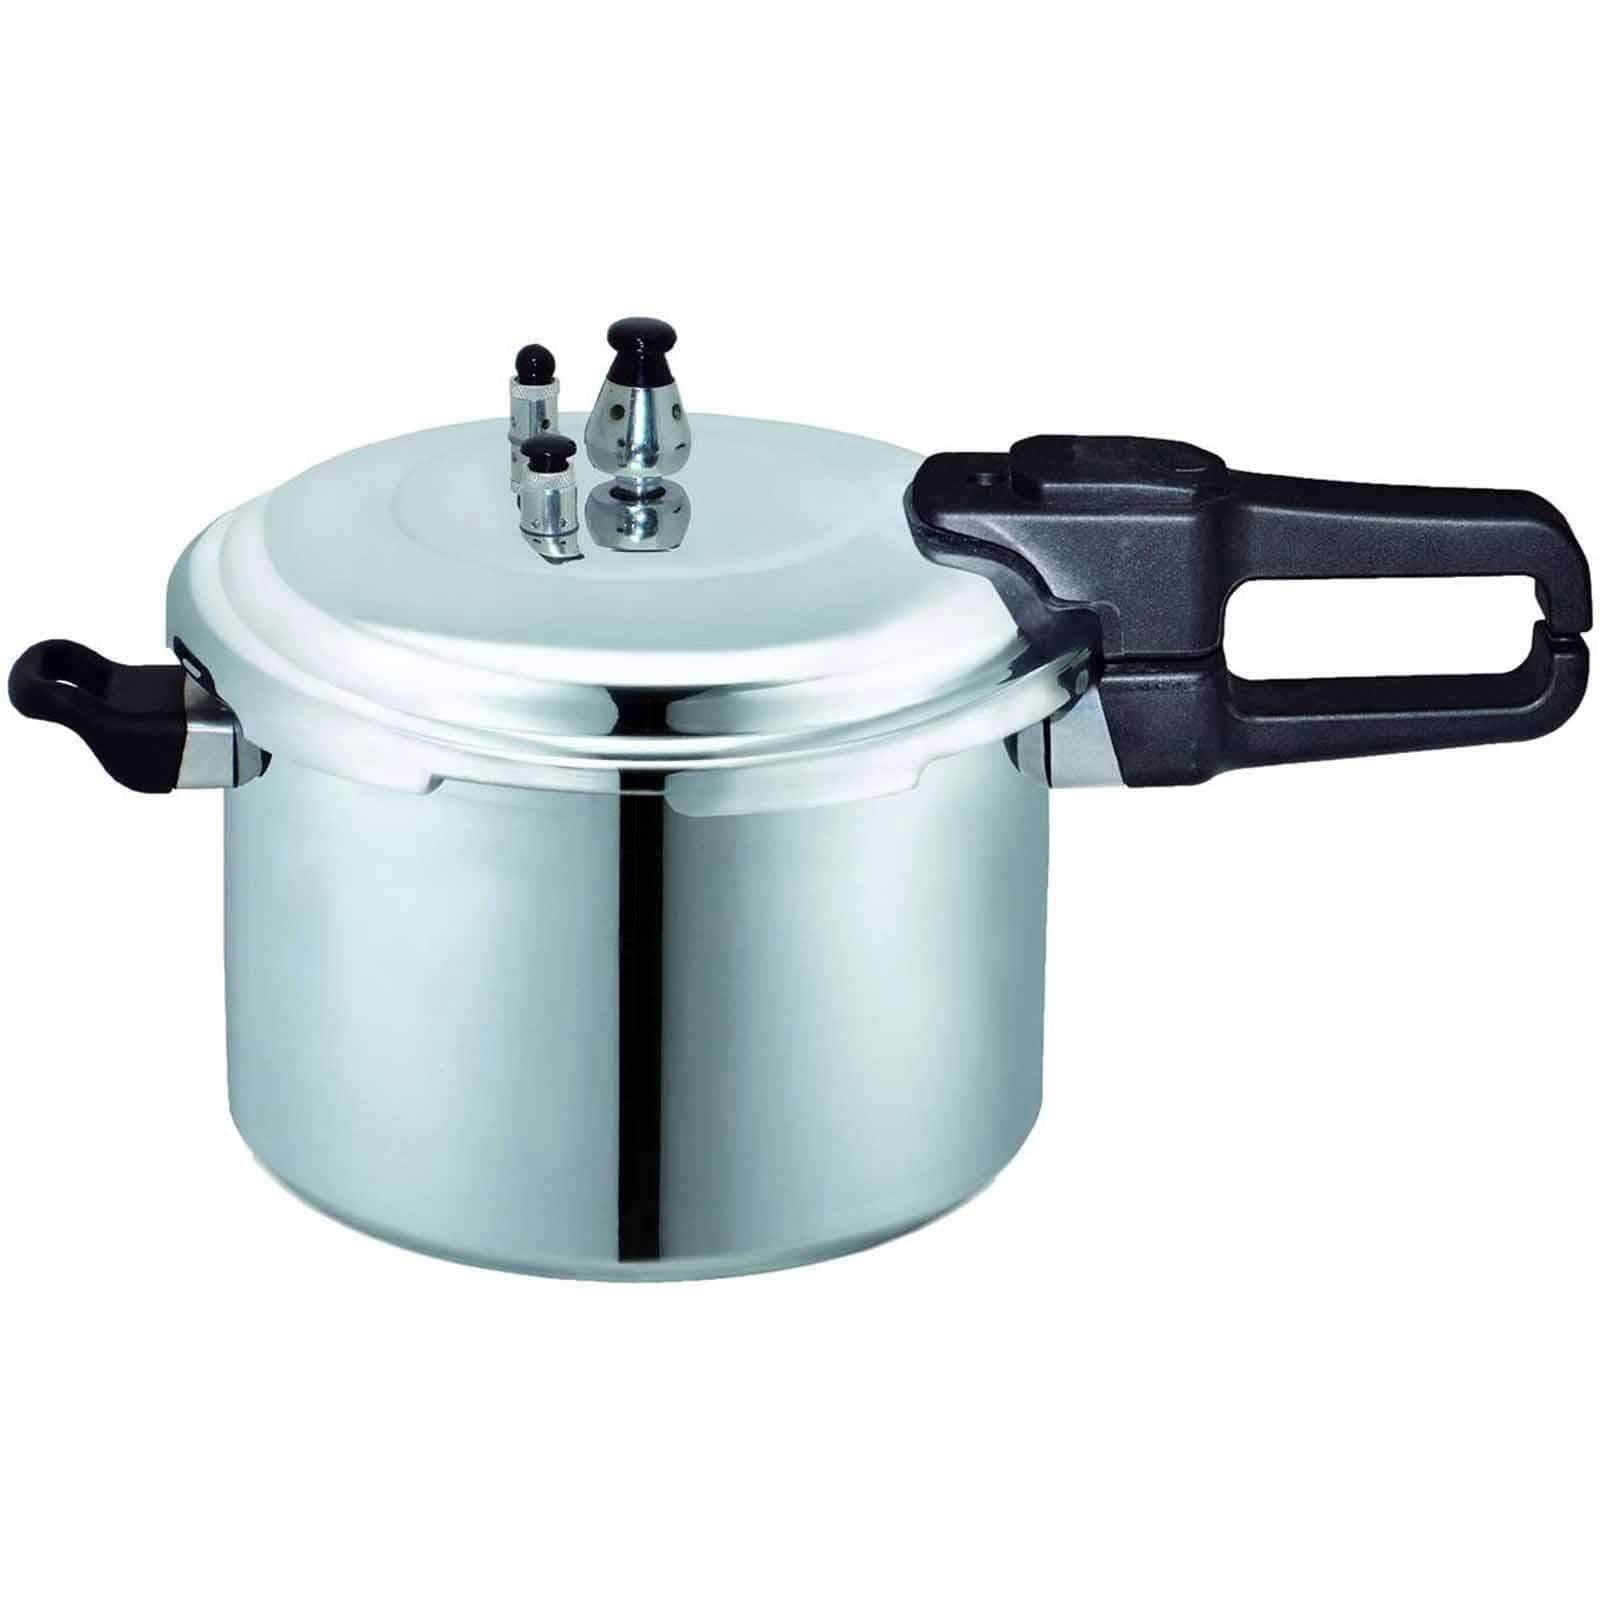 Brentwood Cookware Brentwood Aluminum 9.0L Pressure Cooker